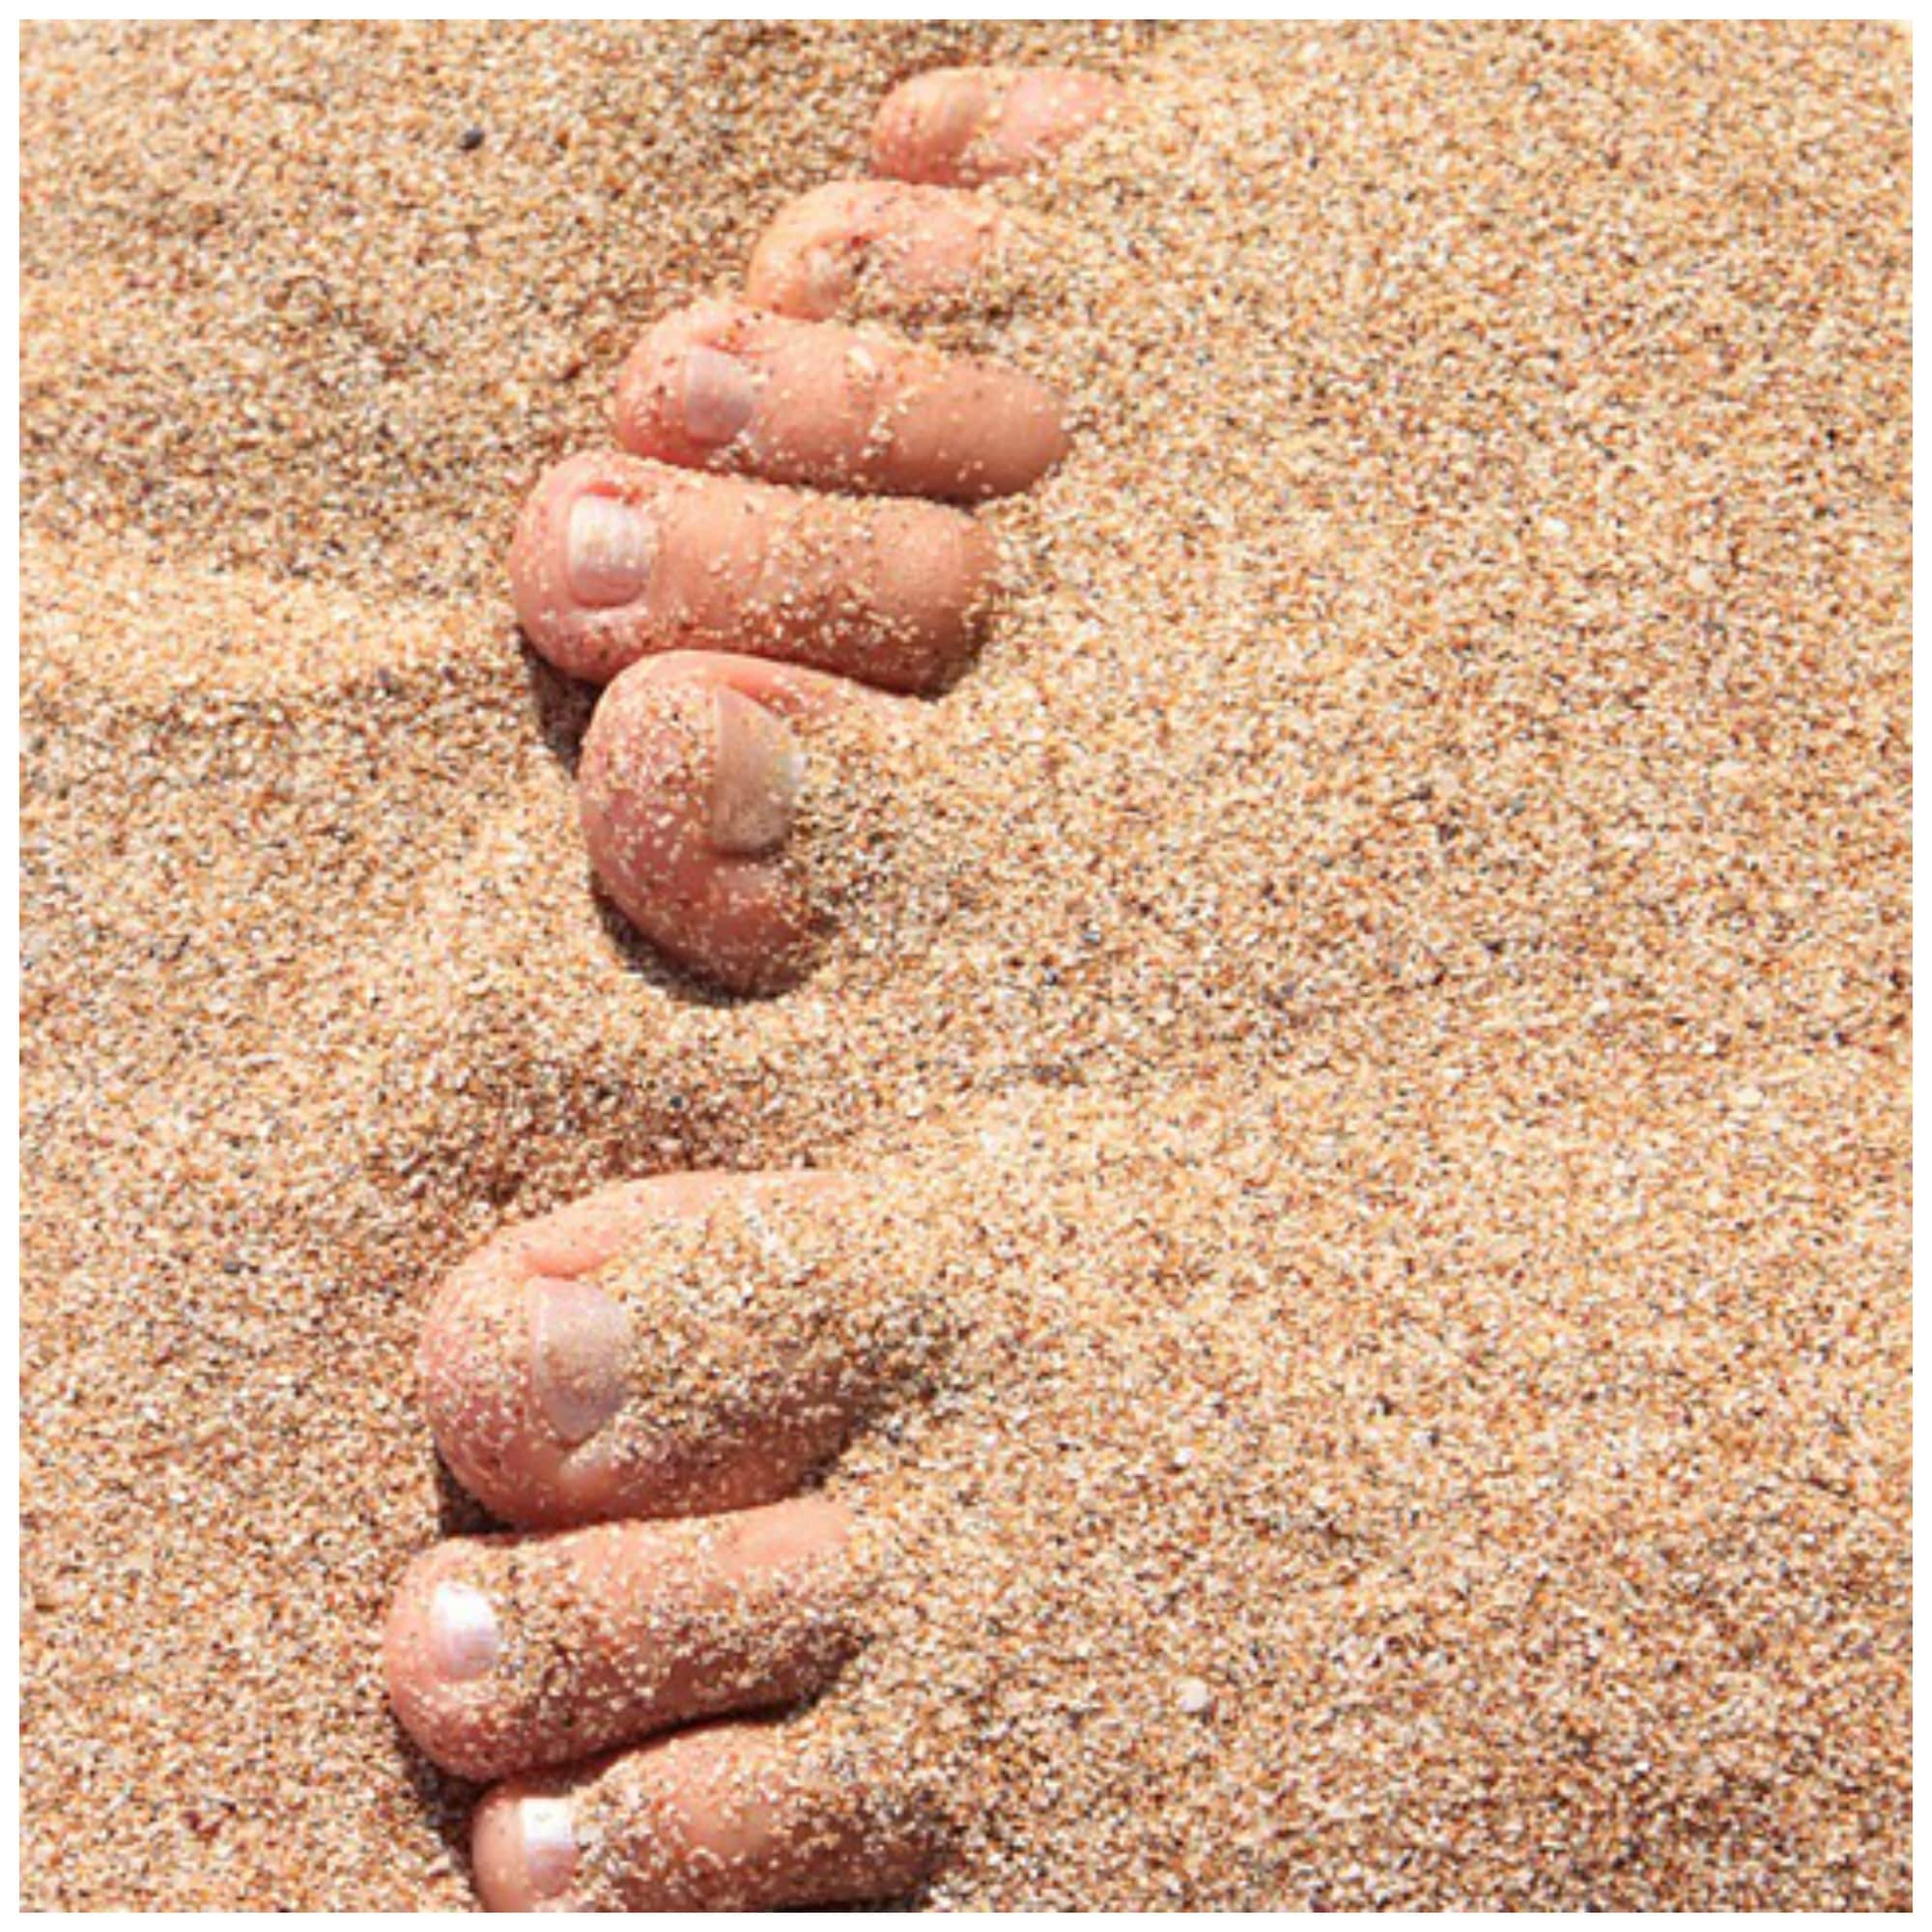 Detoxing your body through your feet